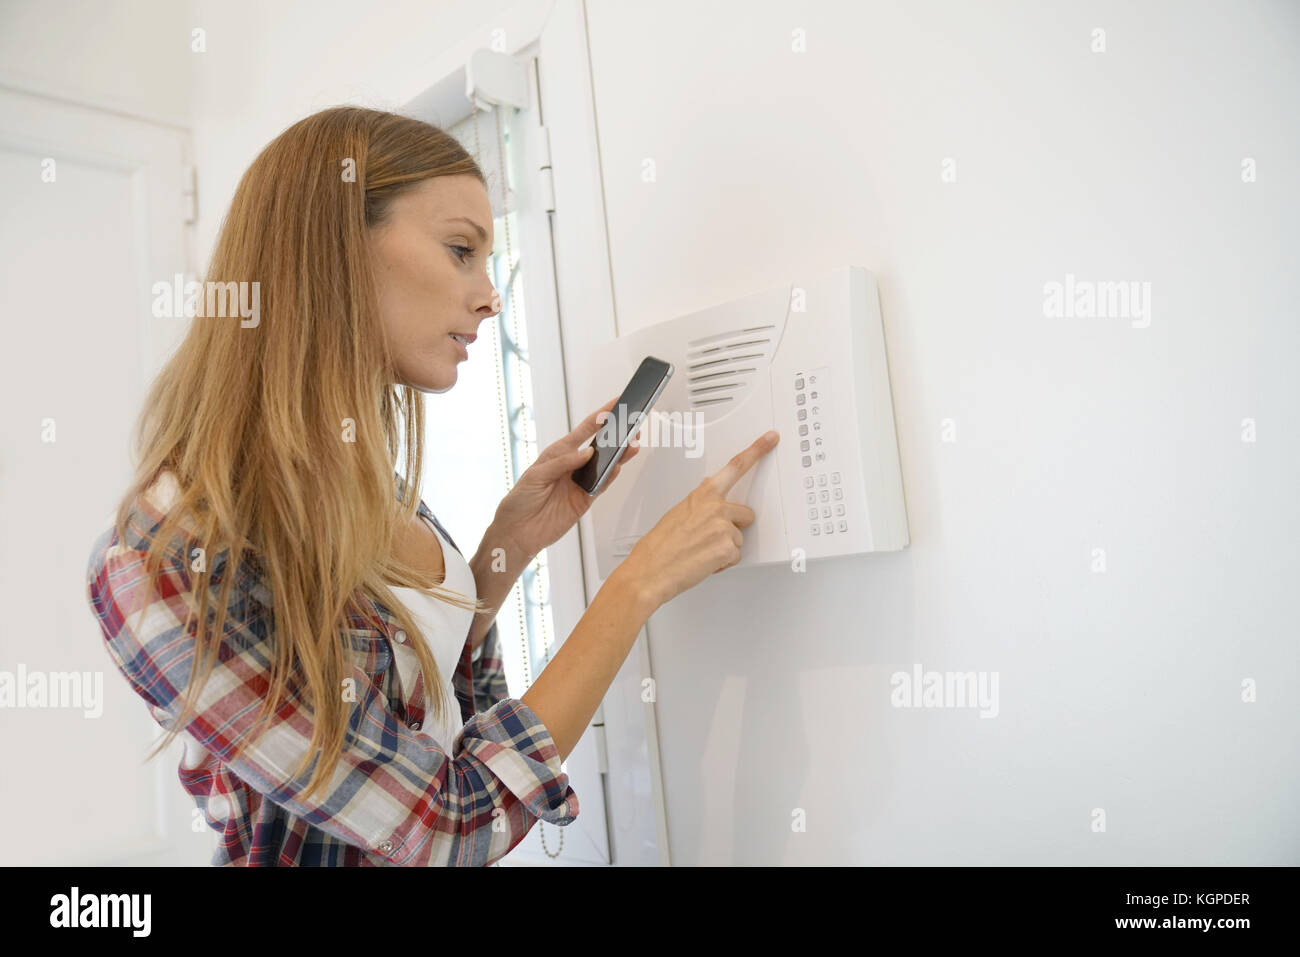 Woman programming home security alarm system Stock Photo